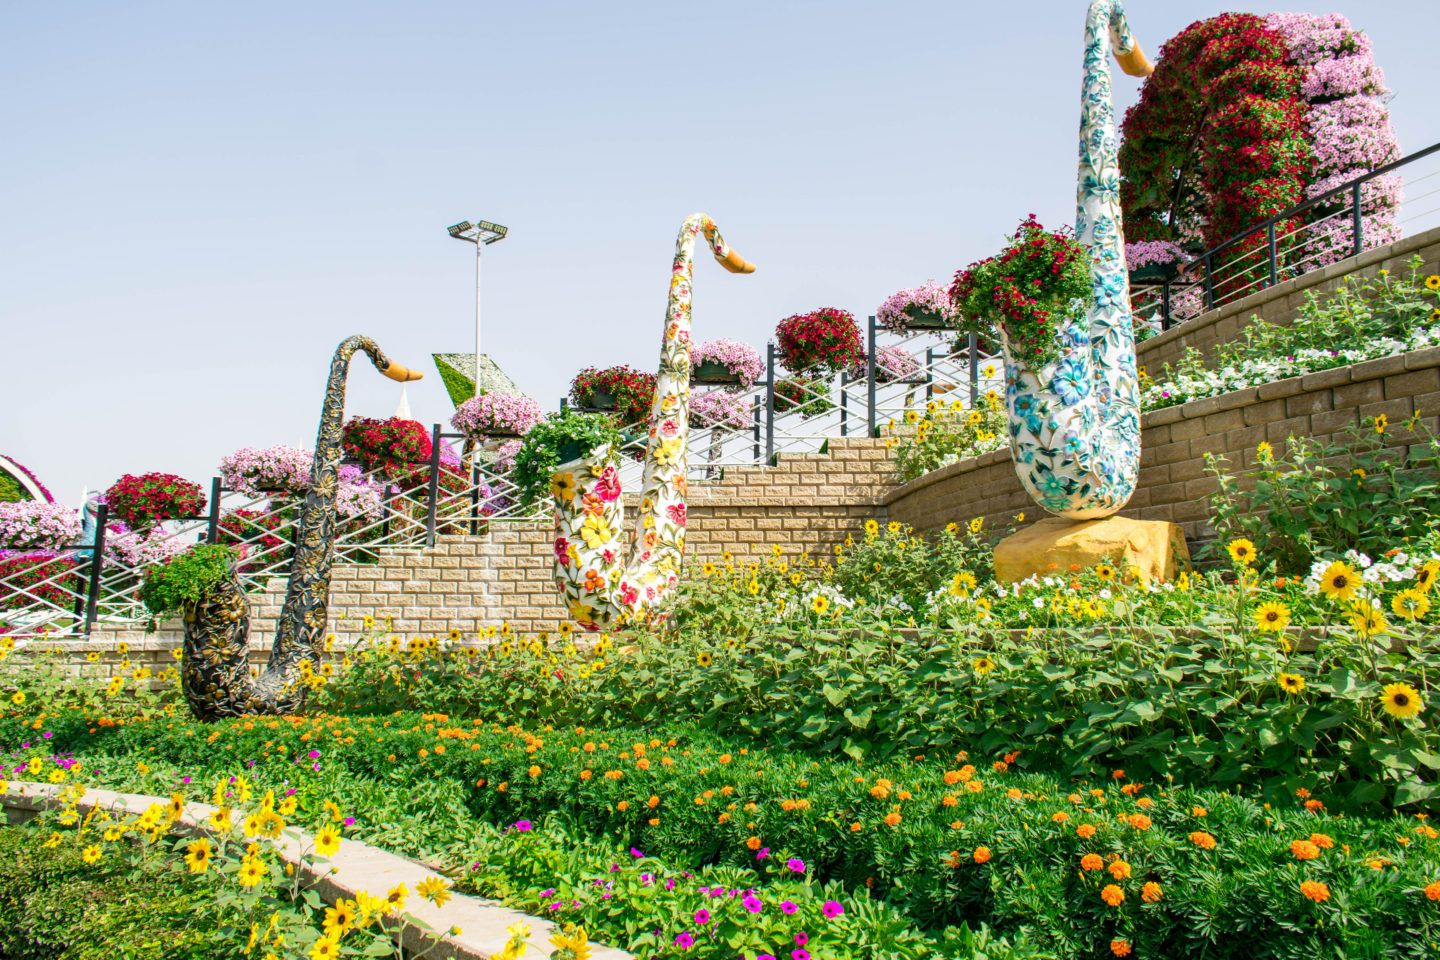 Visiting the Dubai Miracle Gardens is it even worth it